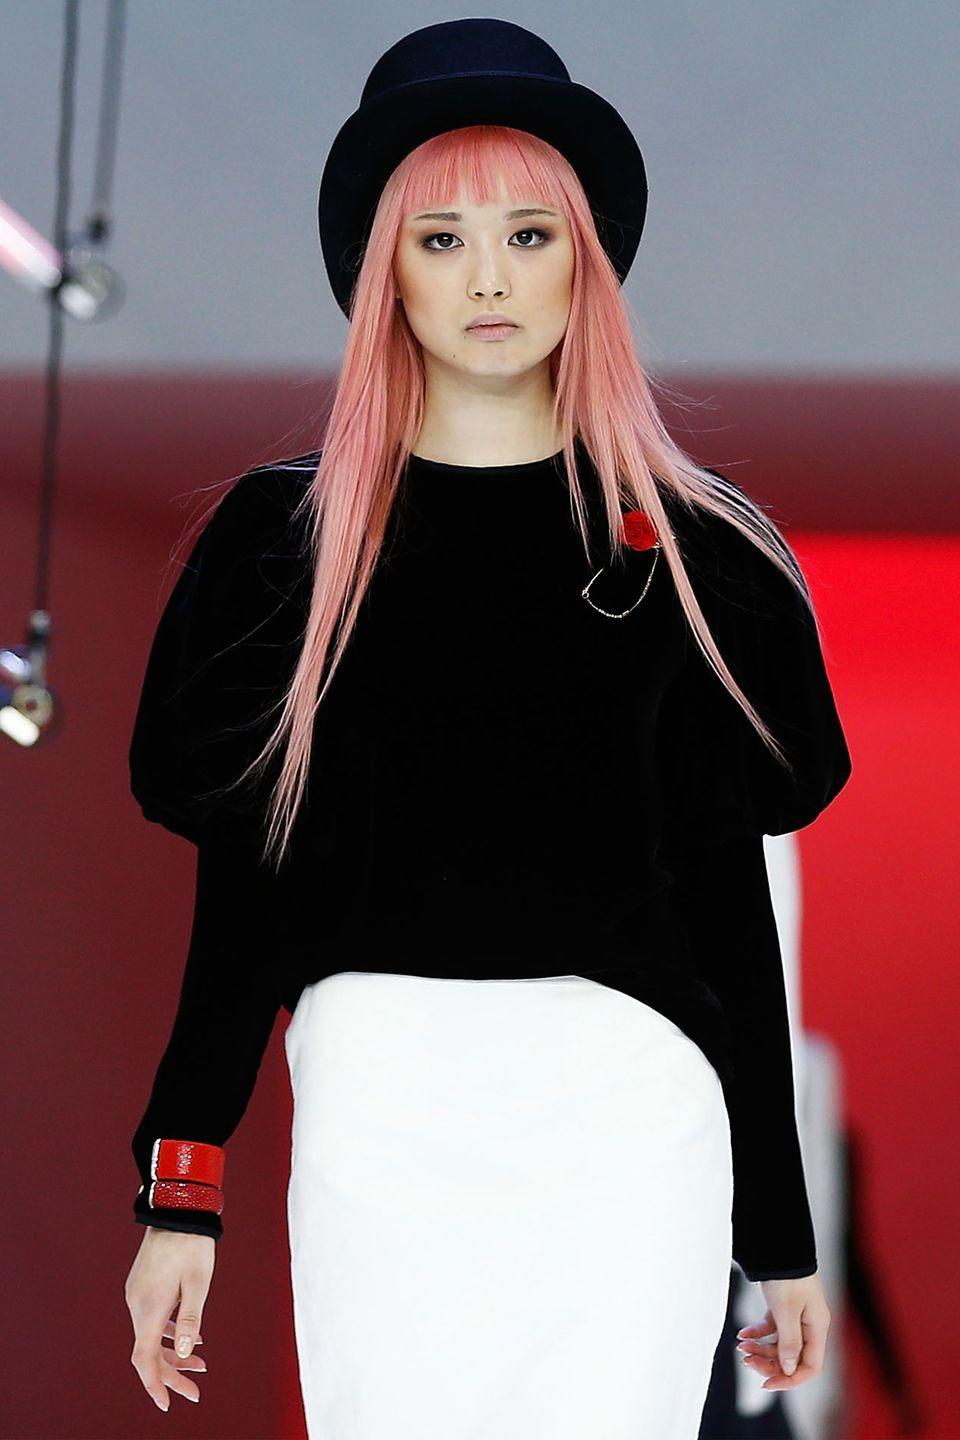 "<p>You can thank Ly's signature <a href=""https://www.allure.com/story/modern-muses"" rel=""nofollow noopener"" target=""_blank"" data-ylk=""slk:bubblegum pink hair"" class=""link rapid-noclick-resp"">bubblegum pink hair</a> for kick-starting her modeling career. She was scouted while shopping at the mall with her mom, gaining attention for her bright locks. After <a href=""https://www.teenvogue.com/story/fernanda-ly-model-dec-jan-cover"" rel=""nofollow noopener"" target=""_blank"" data-ylk=""slk:earning the approval of a famous casting director"" class=""link rapid-noclick-resp"">earning the approval of a famous casting director</a>, Ly decided to pursue modeling more vigorously. </p>"